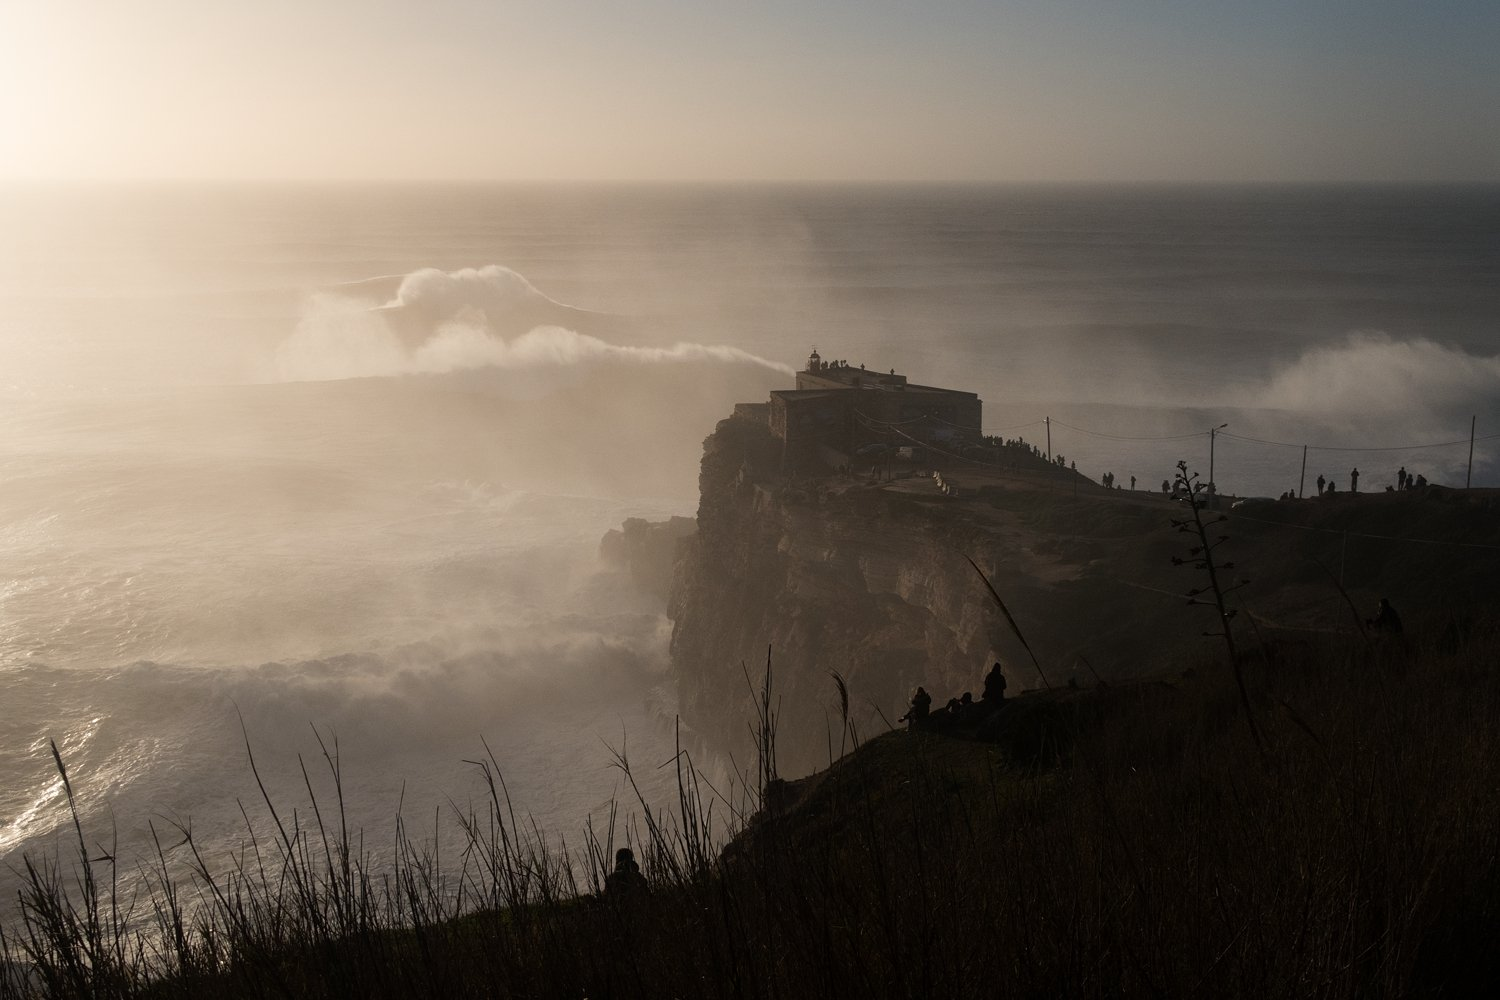 Tom's photo of Nazaré